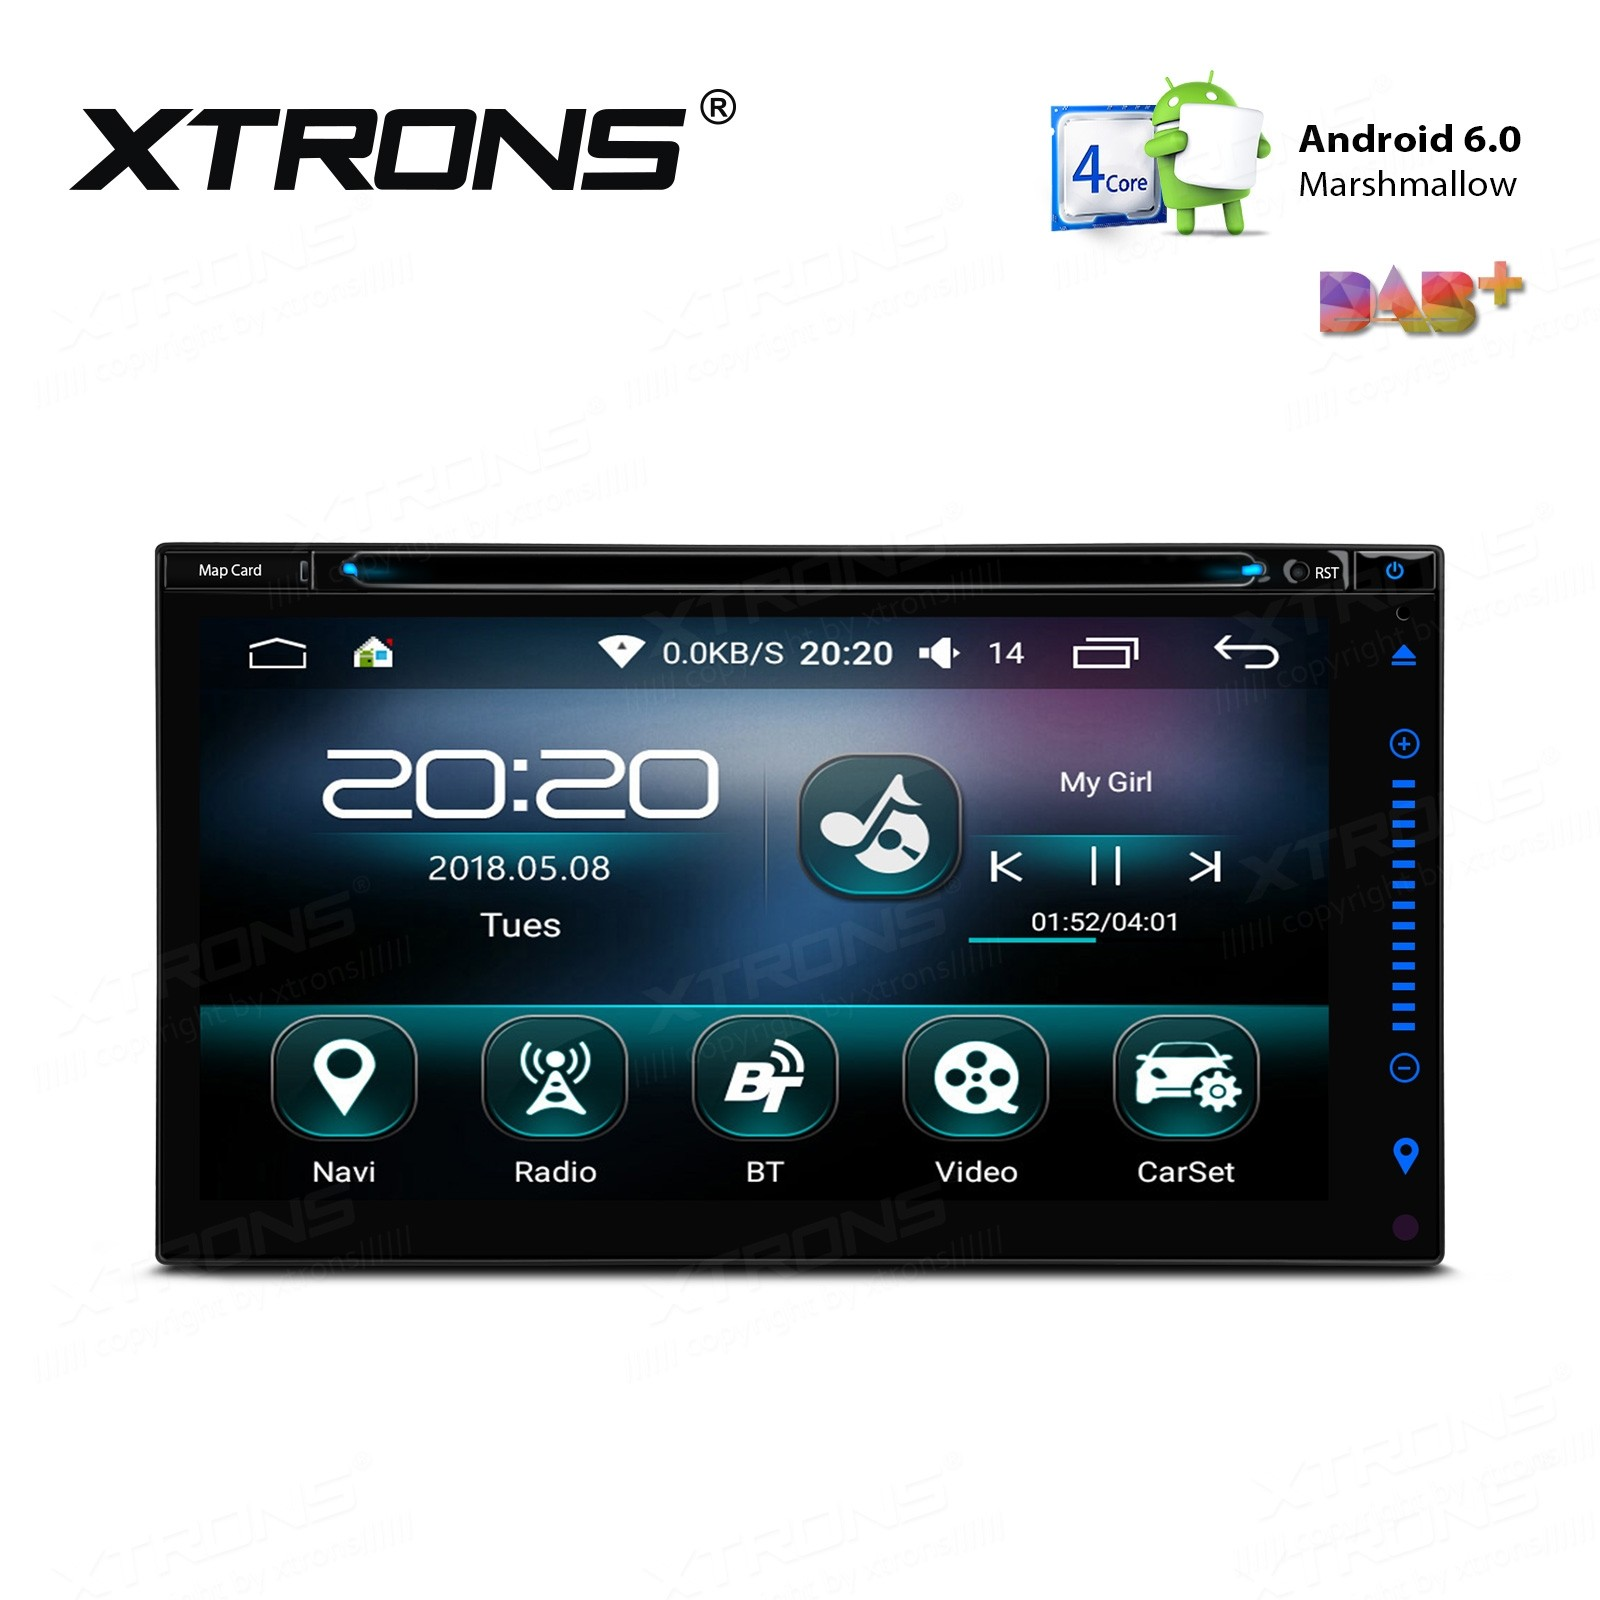 """6.95"""" Android 6.0 Marshmallow Quad Core 16G ROM HD Digital Touch Screen Car Multimedia Player"""